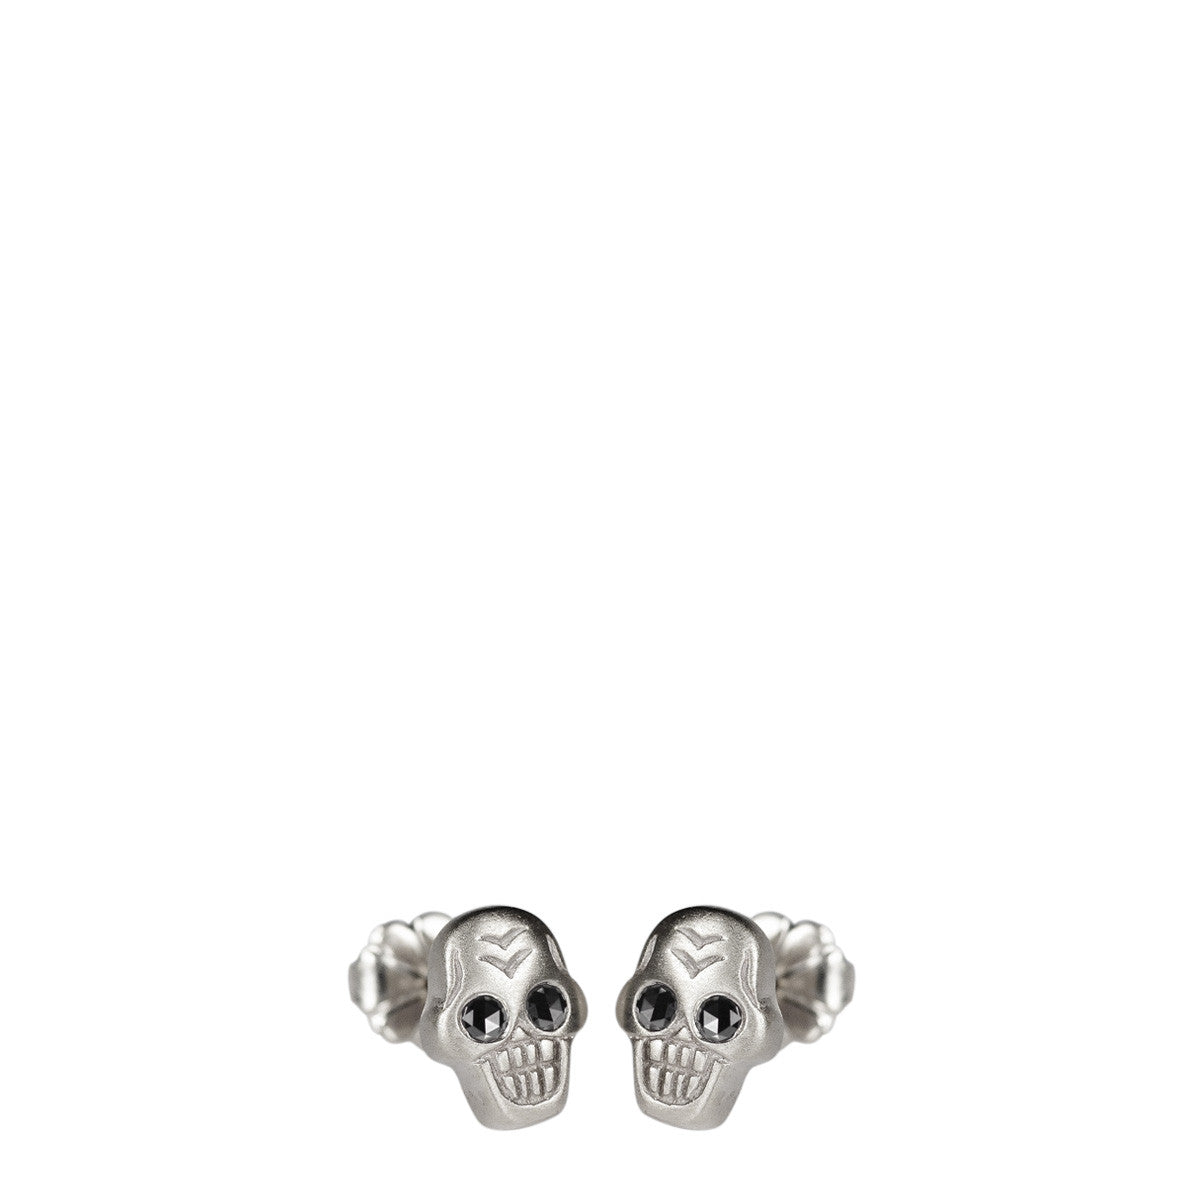 Sterling Silver Tiny Skull Stud Earrings with Black Diamond Eyes